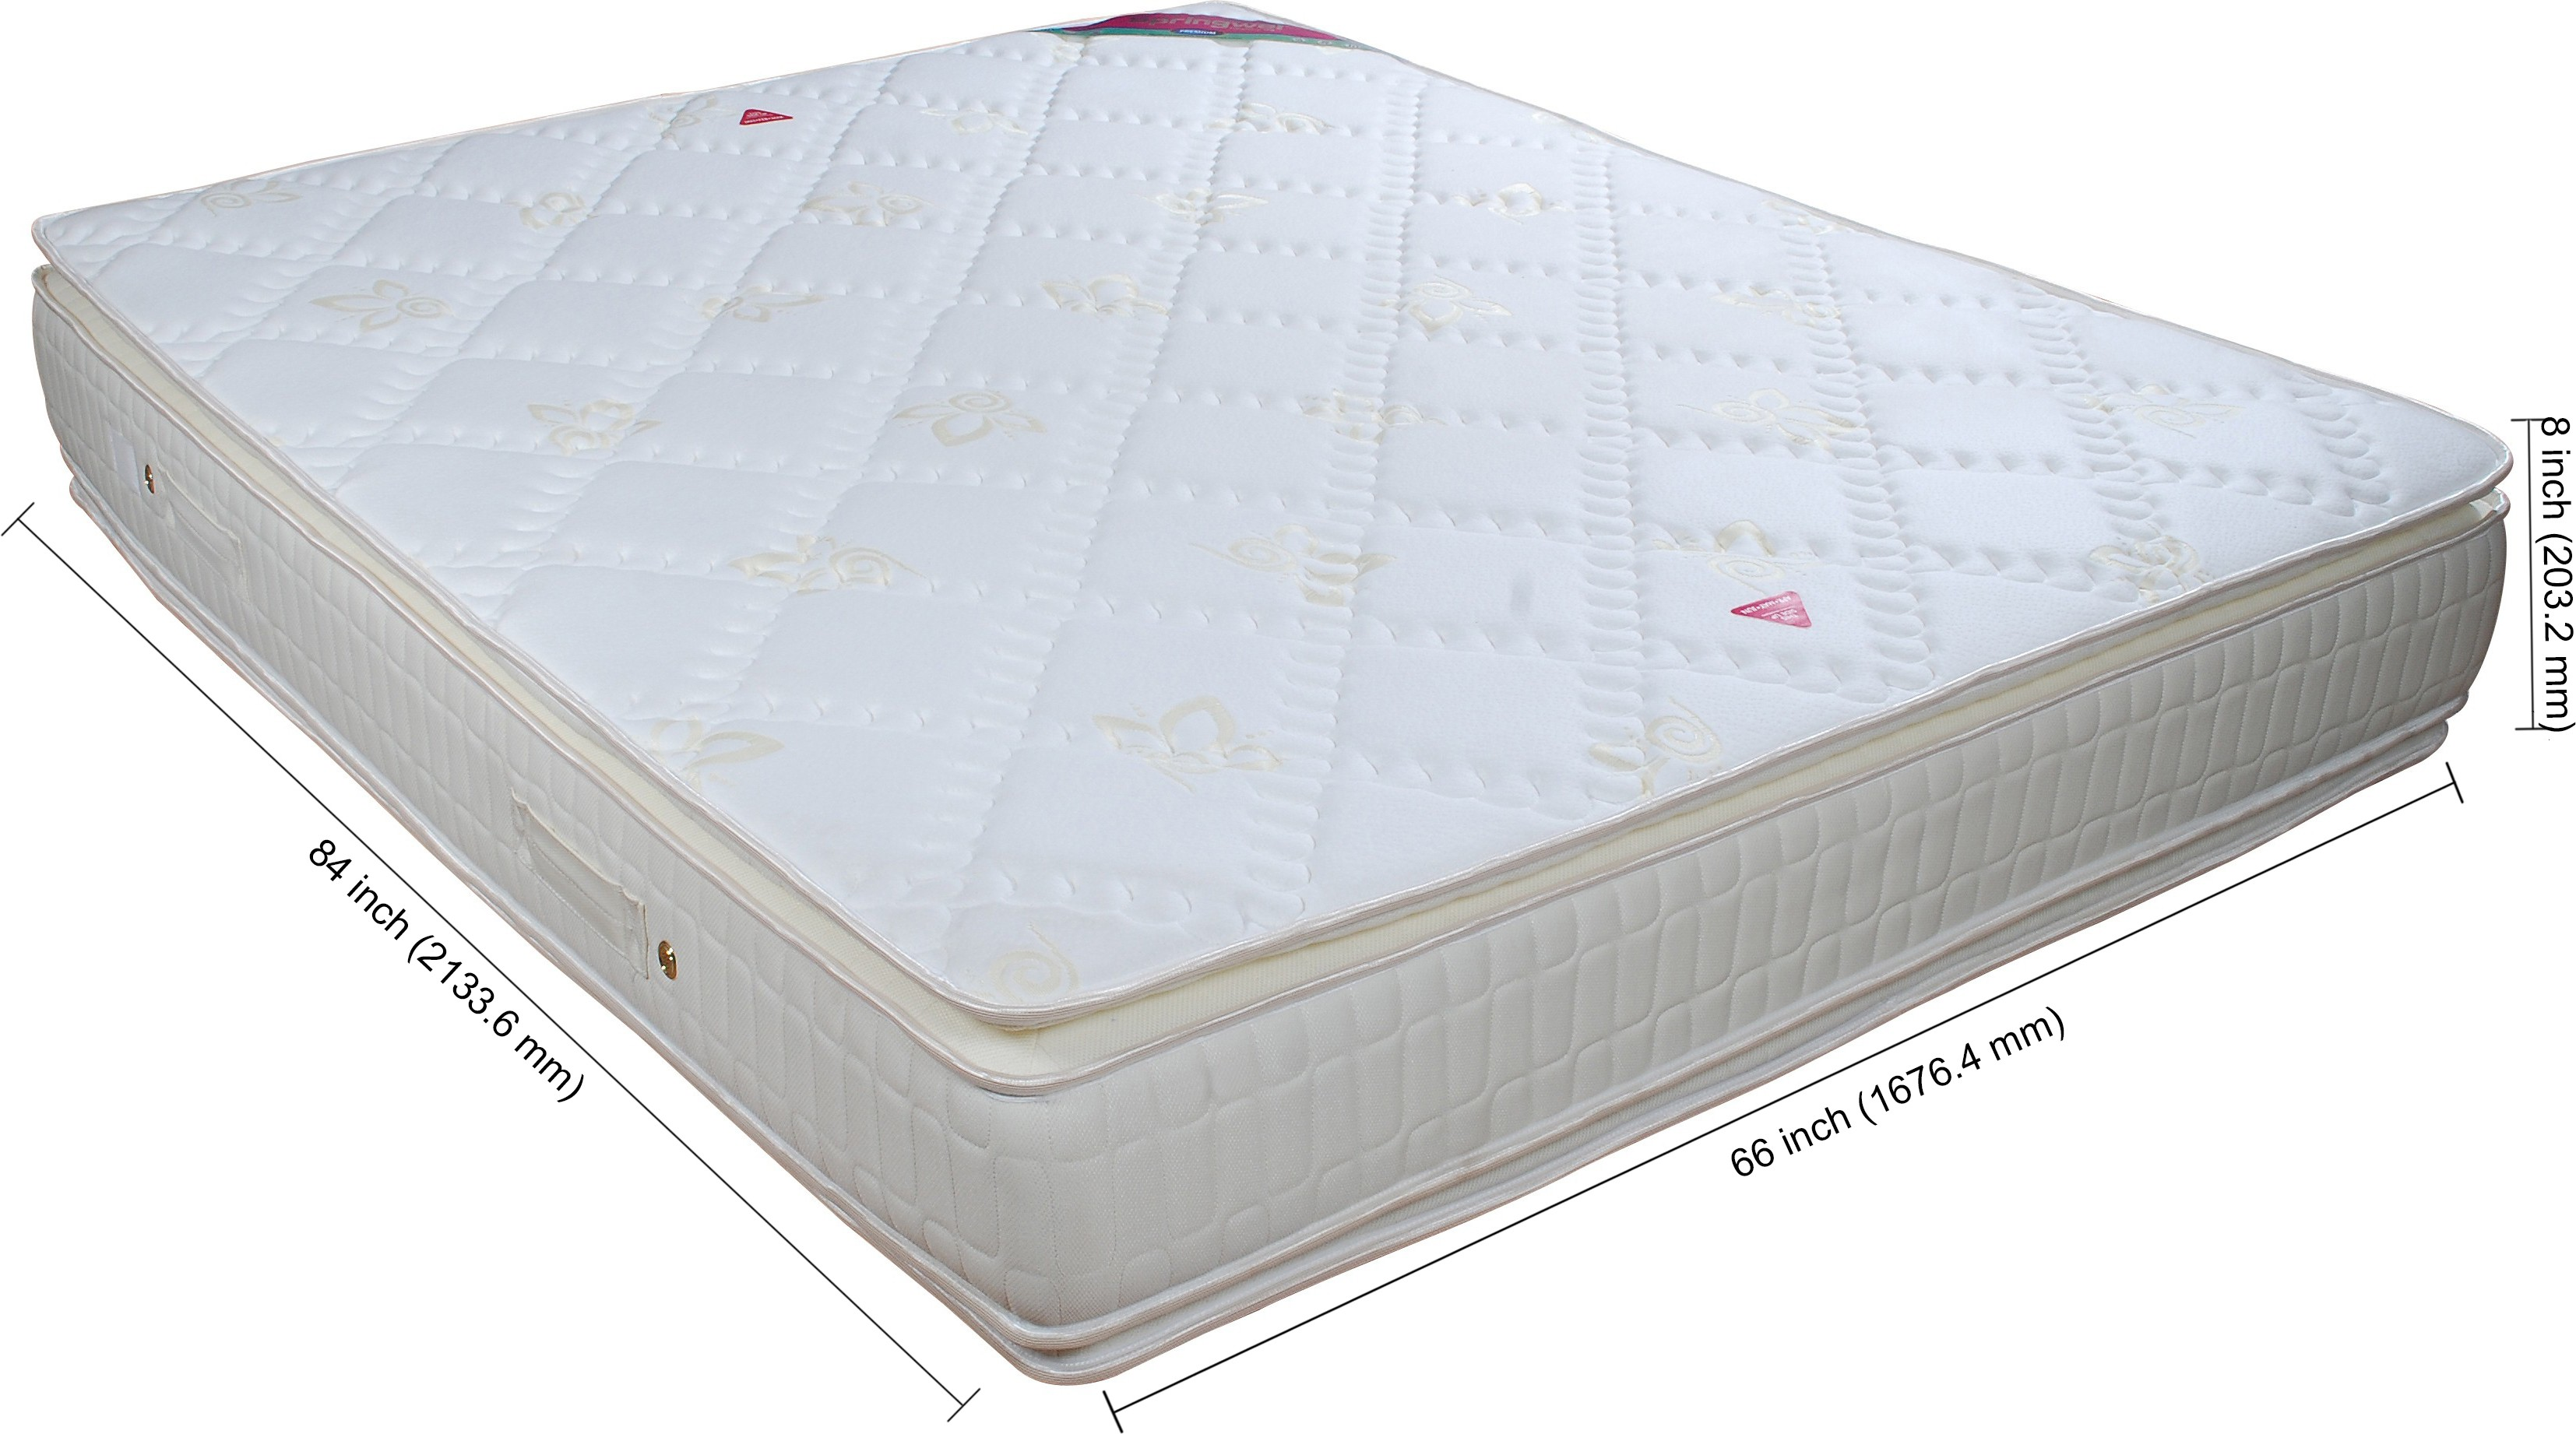 Springwel Premium Collection 8 inch Queen Spring Mattress